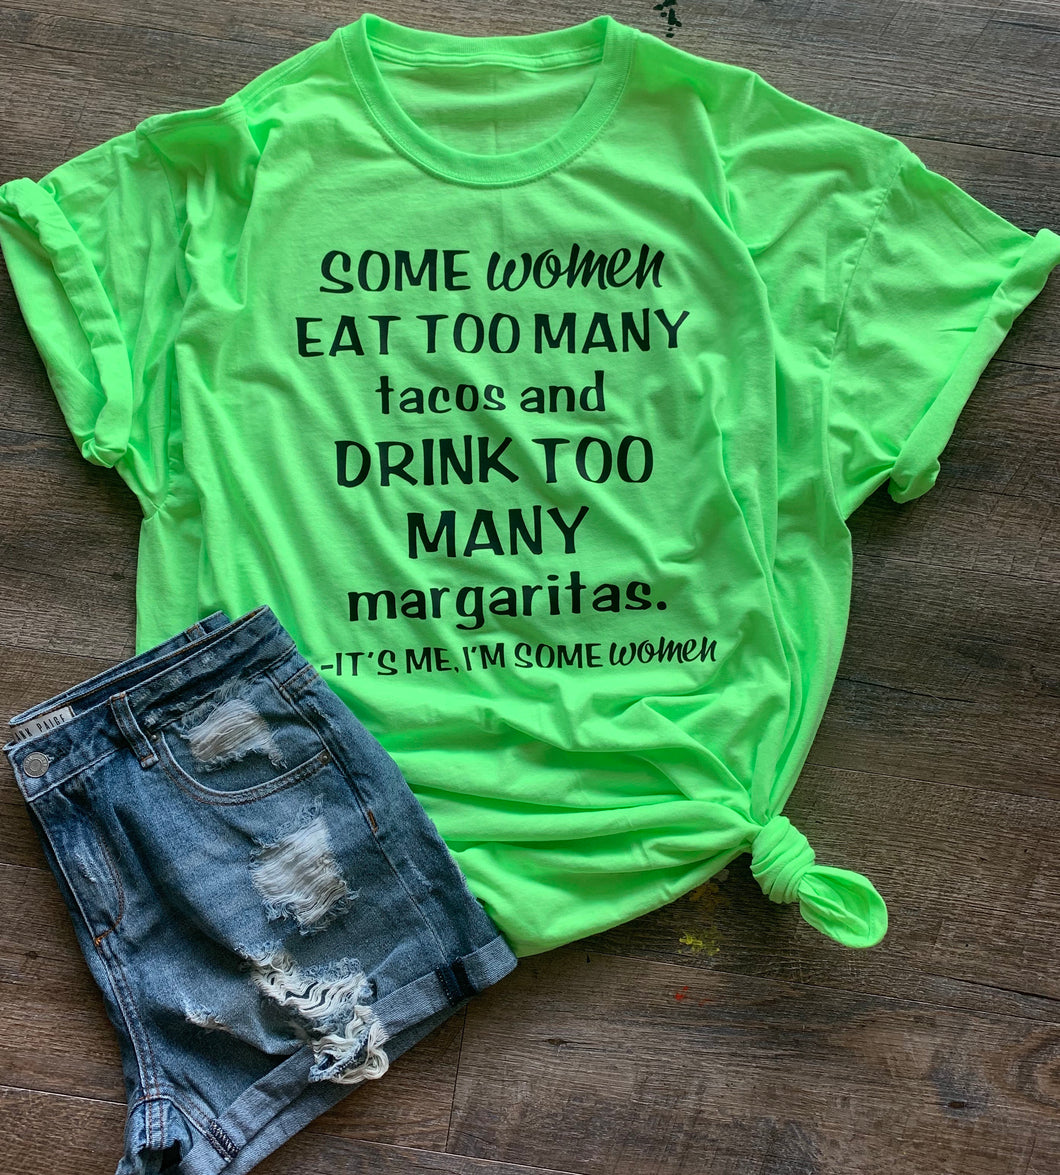 Some women eat too many tacos and drink too many margaritas it's me I'm some women funny graphic tee - Mavictoria Designs Hot Press Express